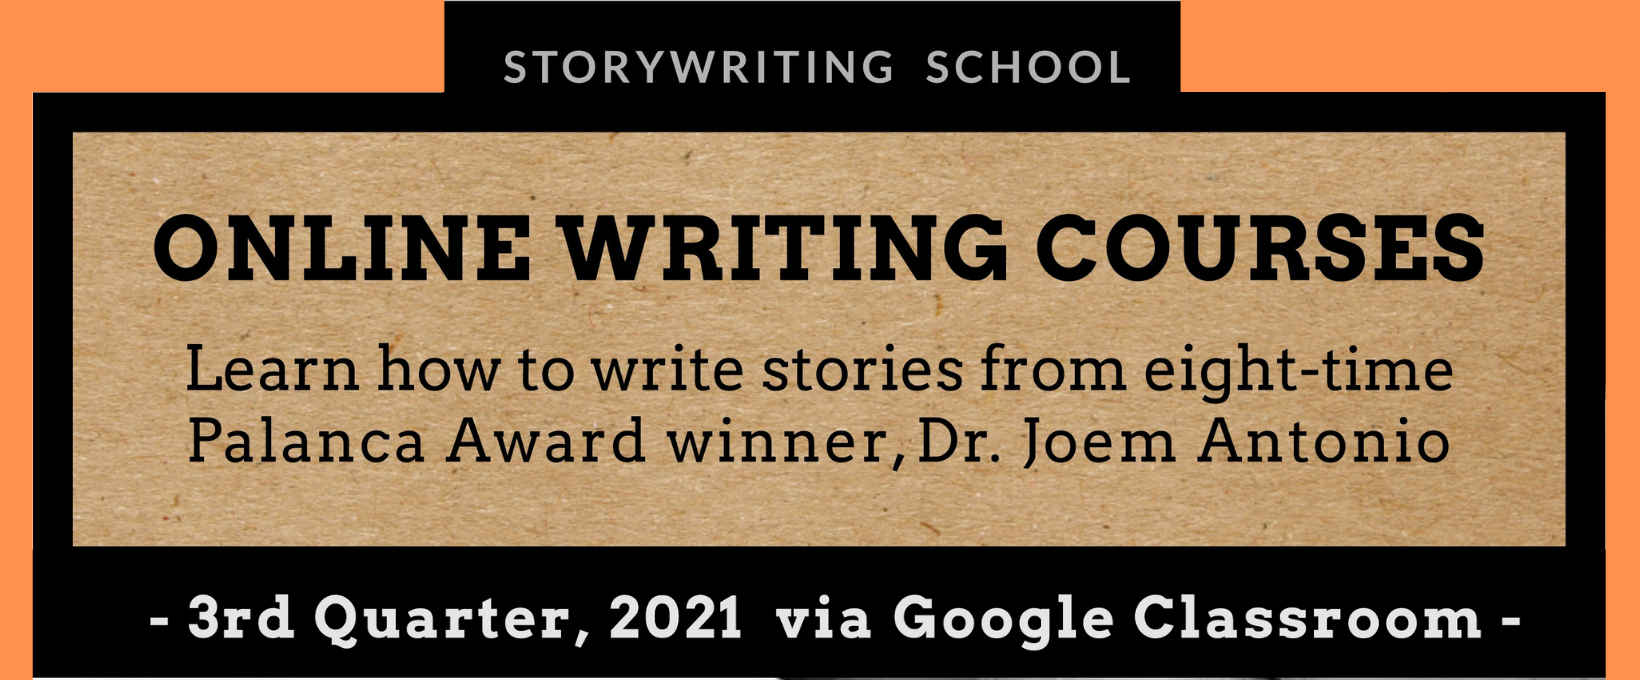 Online Writing Classes with Storywriting School